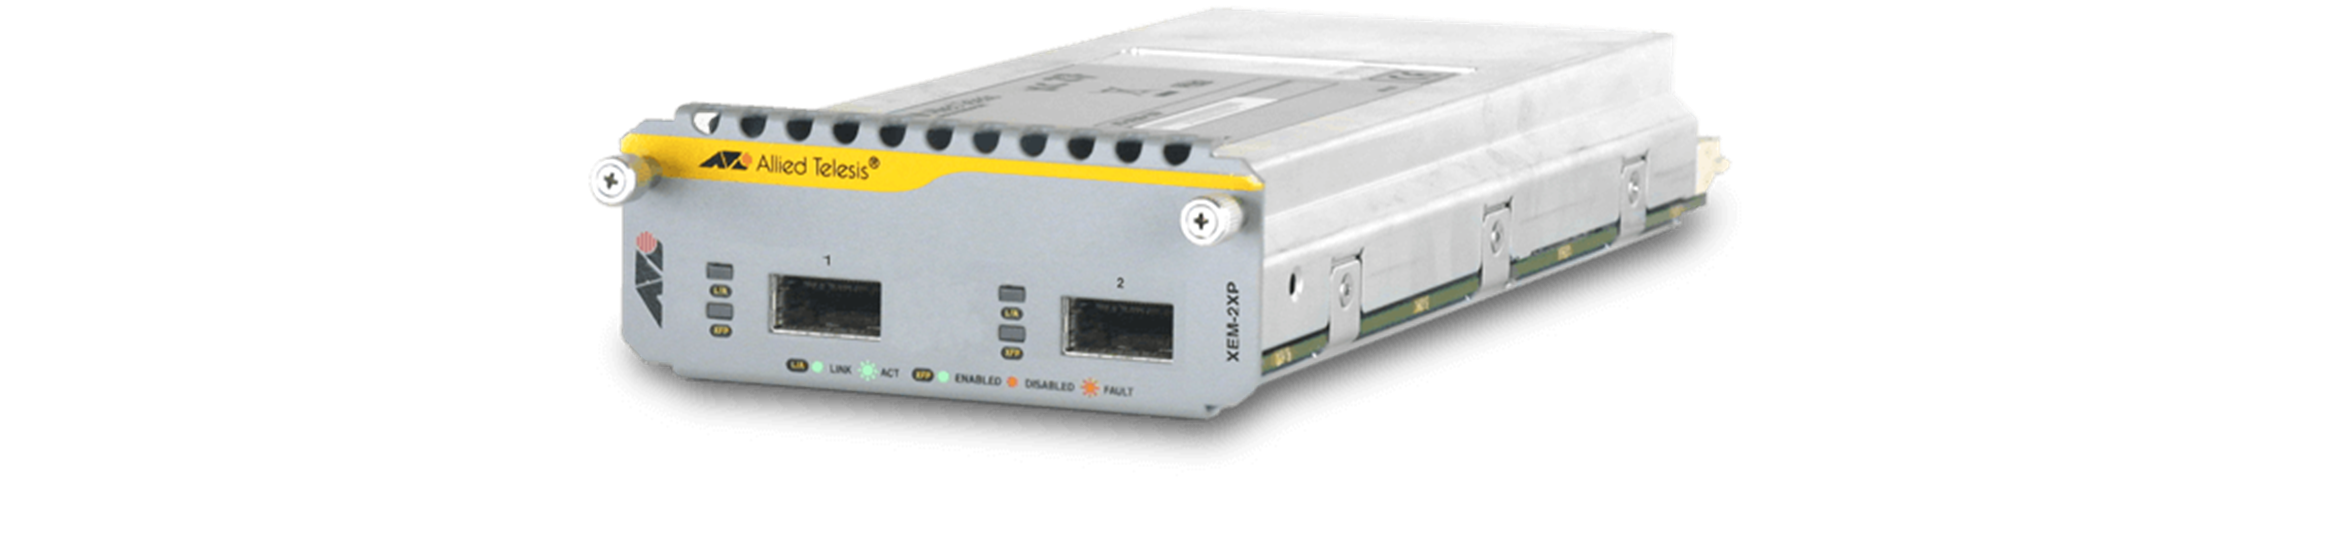 AT-SBx908 series - Advanced  Stackable Layer 3 Gigabit SwitchBlade